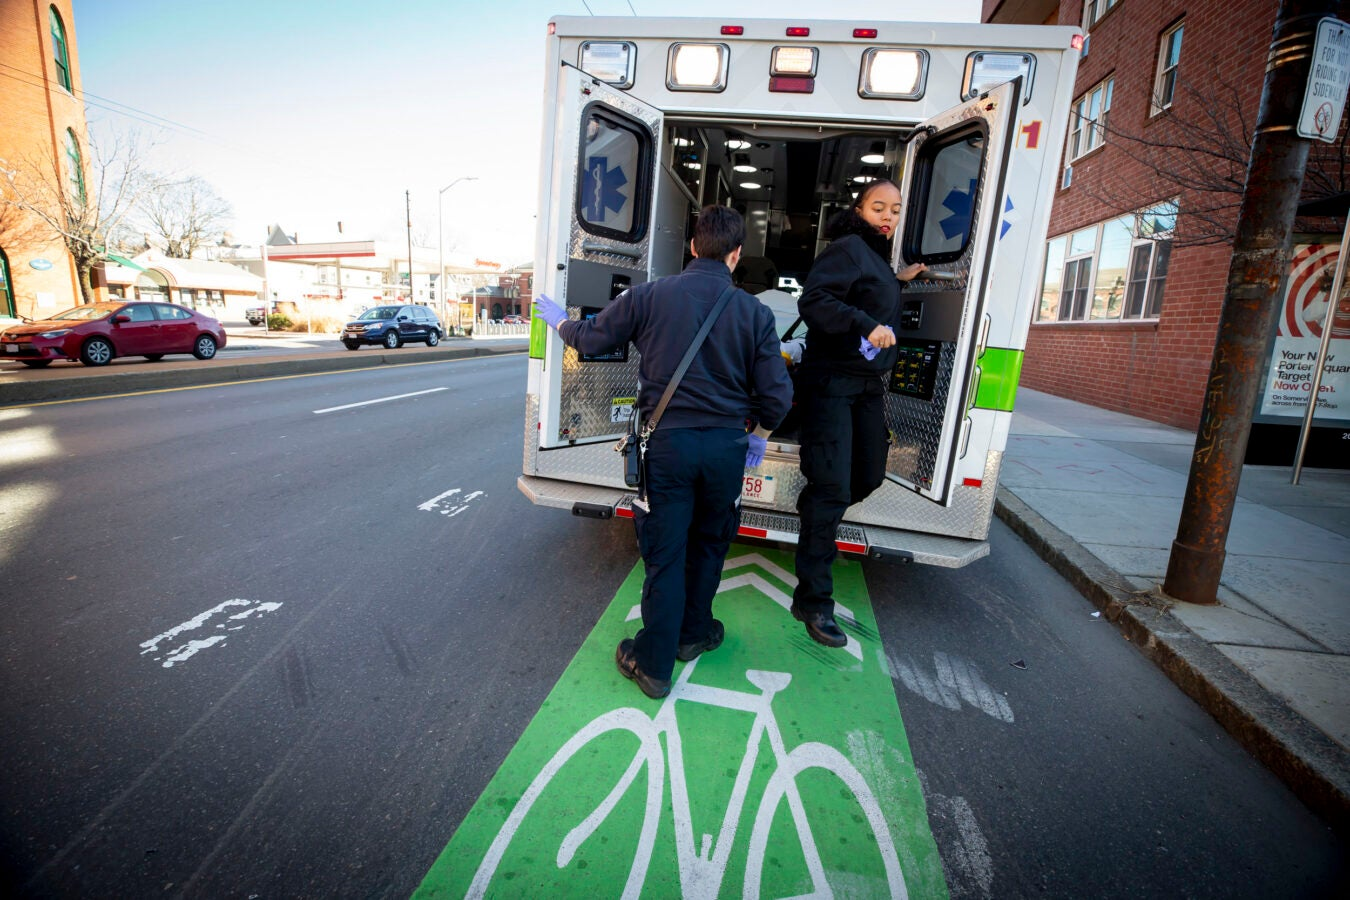 EMTs exit the back of an ambulance parked on the street.